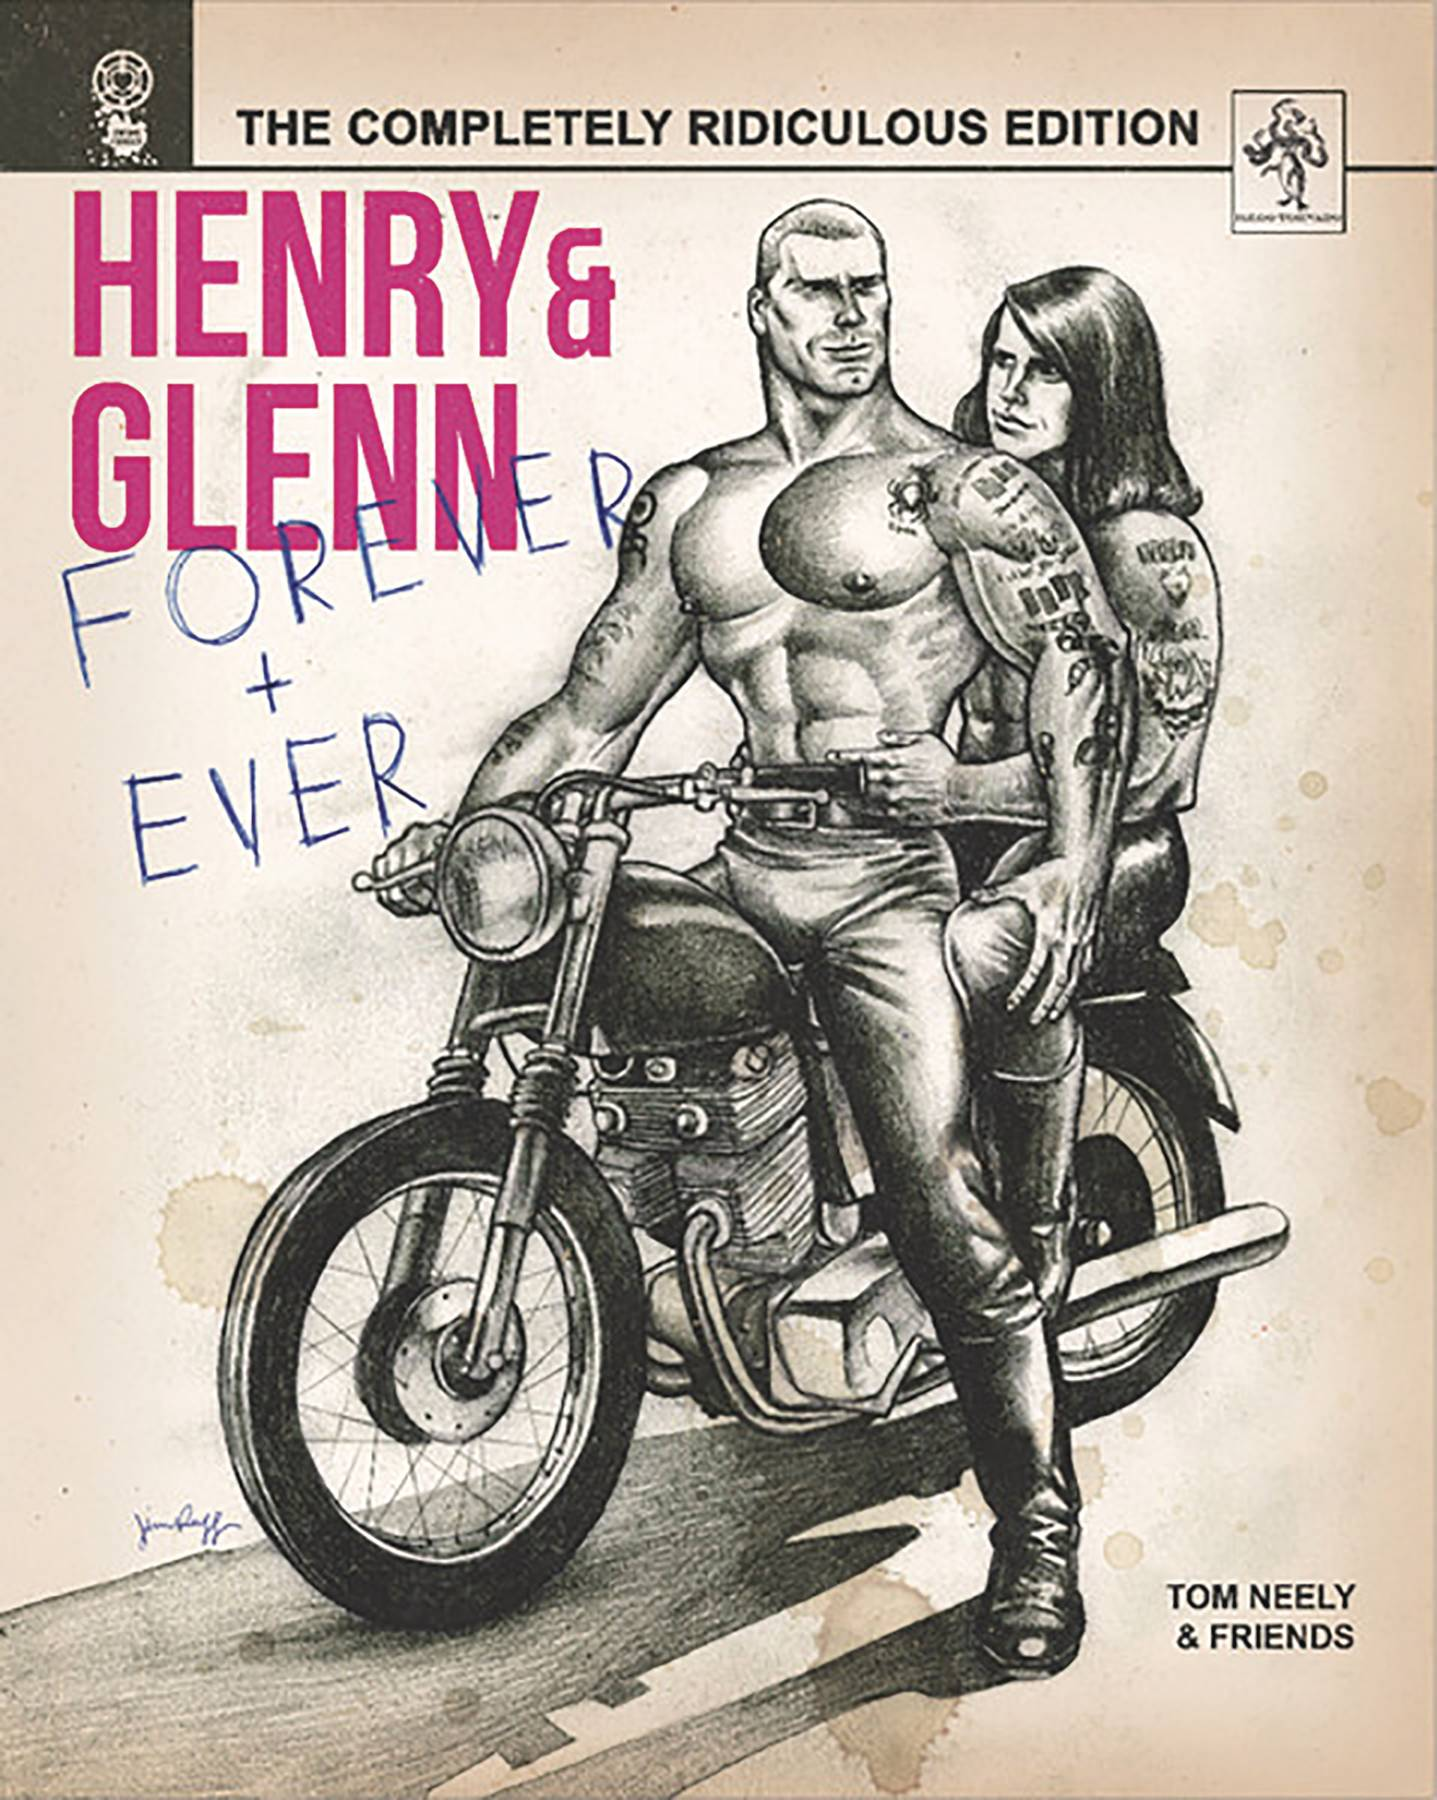 Henry & Glenn Forever and Ever HC: The Completely Ridiculous Edition - Lauren's PickHenry and Glenn are back and better than ever! In these hilarious short stories, Tom Neely (The Humans) and a star-studded list of indie cartoonists imagine the day-to-day routine of obvious true loves Glenn Danzig and Henry Rollins. From poorly considered deals with the devil to inlaw-induced turmoil, Henry and Glenn's relationship finds itself tested at every turn! This new hardcover edition includes never before seen art and stories from creators such as Michael Deforge, Ben Marra, and many more!